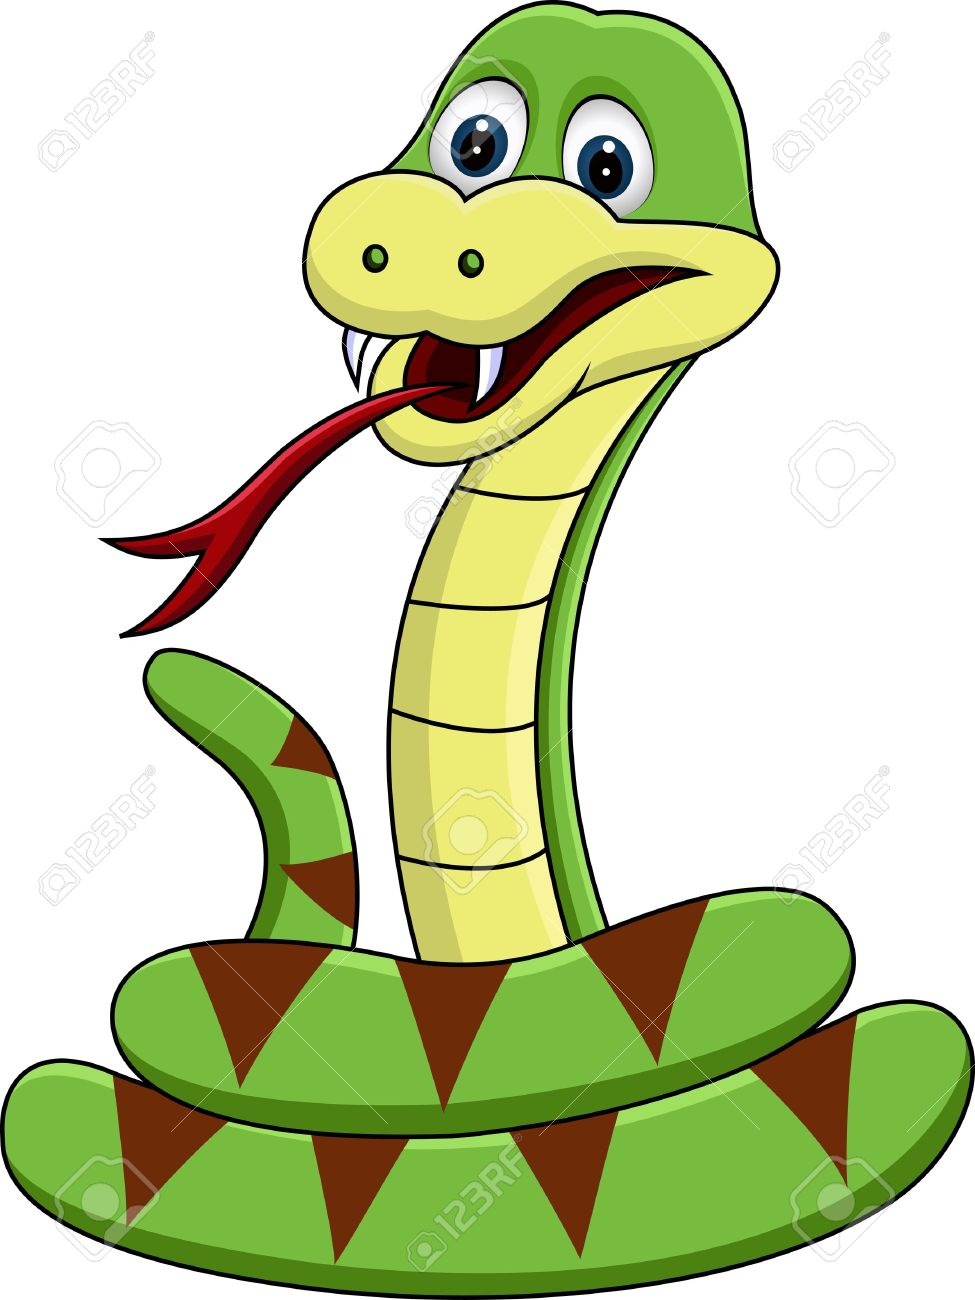 Snake Clip Art For Kids | Clipart Panda - Free Clipart Images